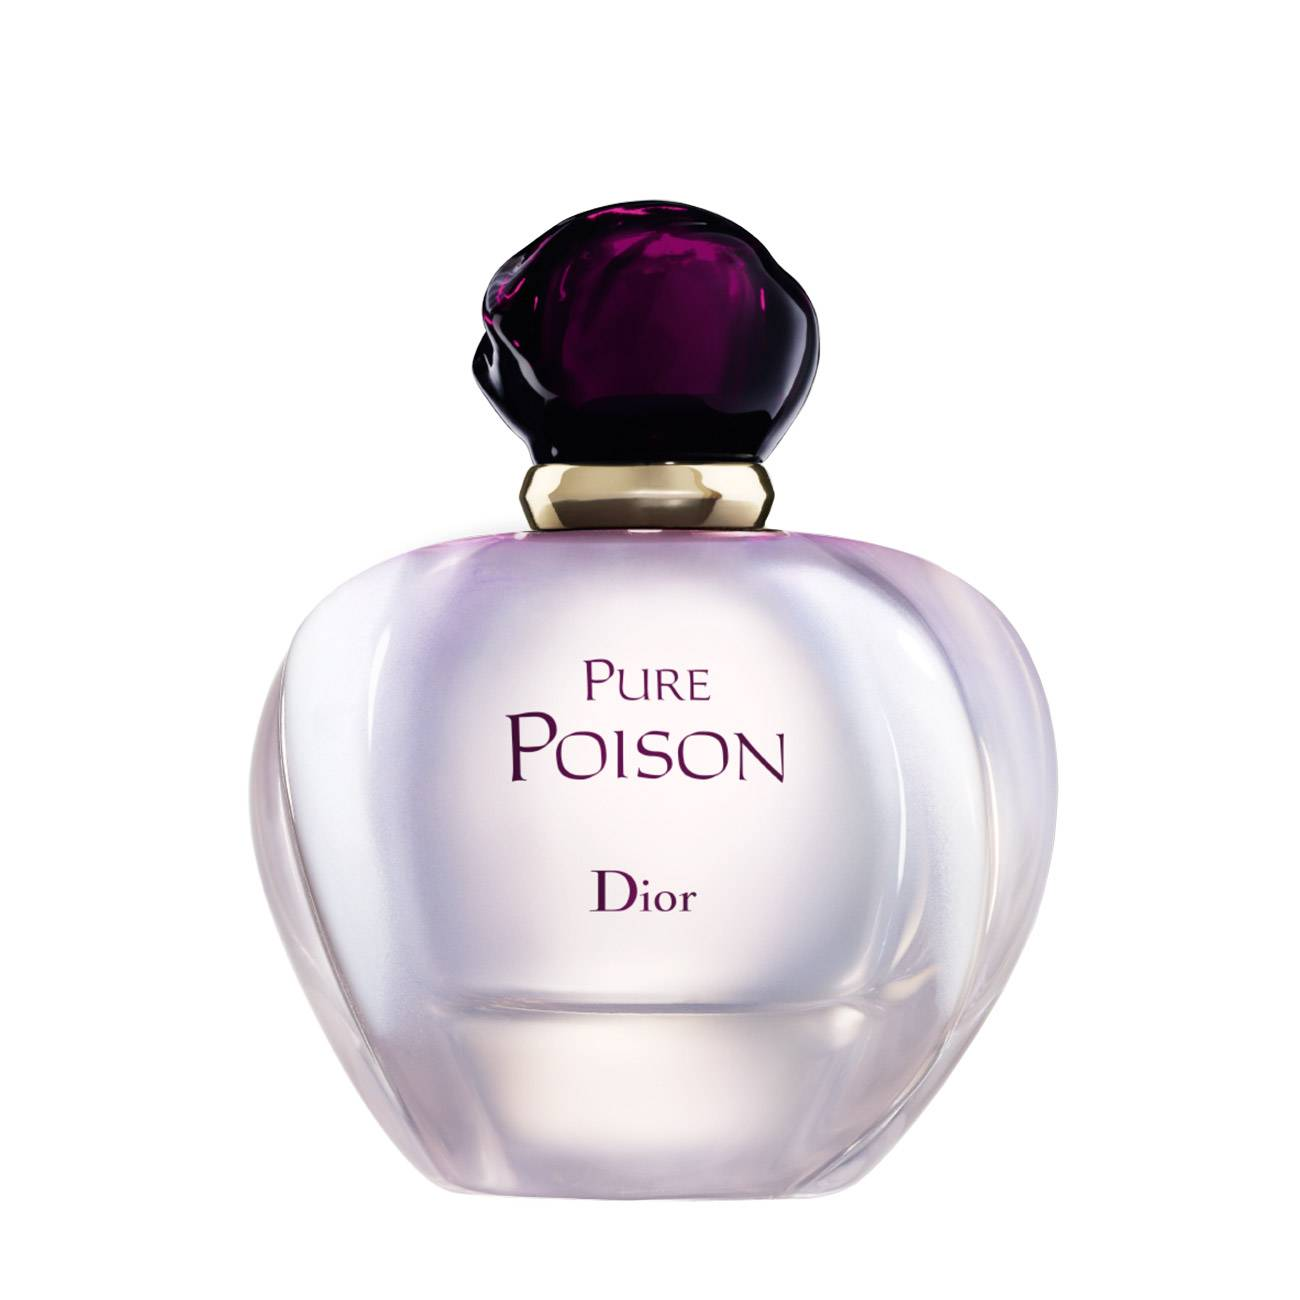 PURE POISON 100ml